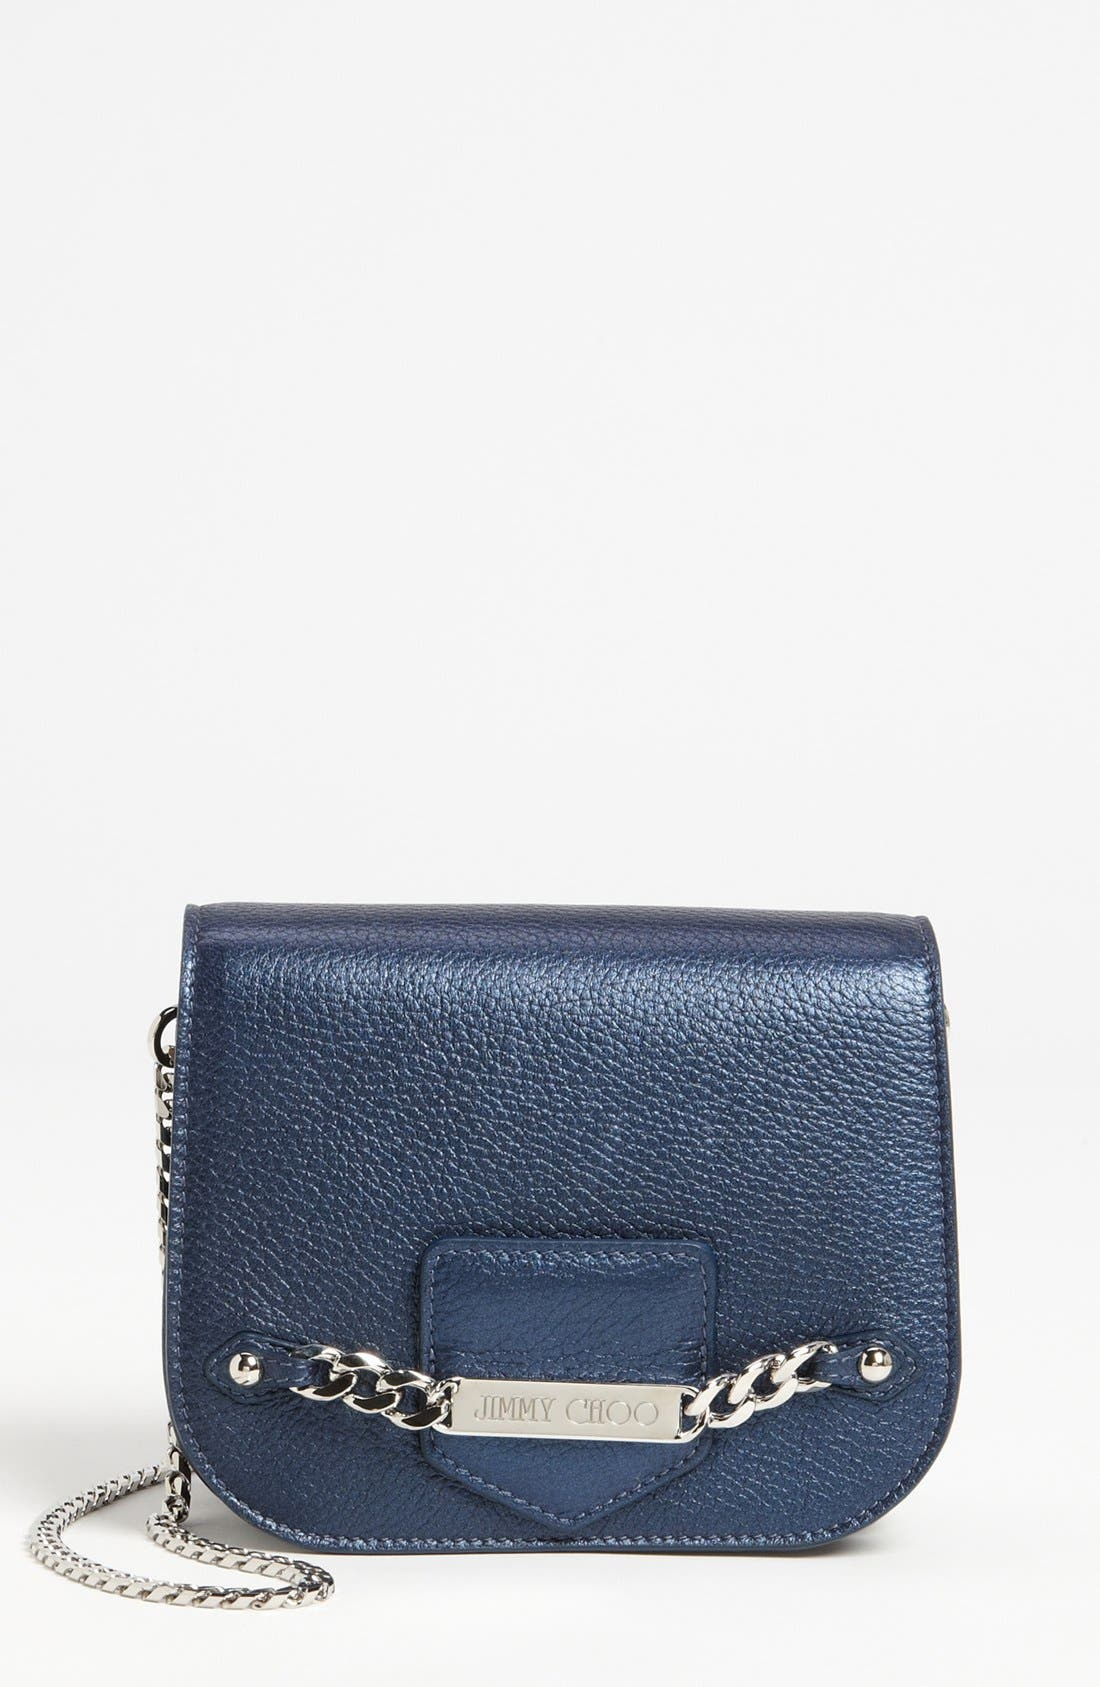 Alternate Image 1 Selected - Jimmy Choo 'Shadow' Pearlized Leather Crossbody Bag